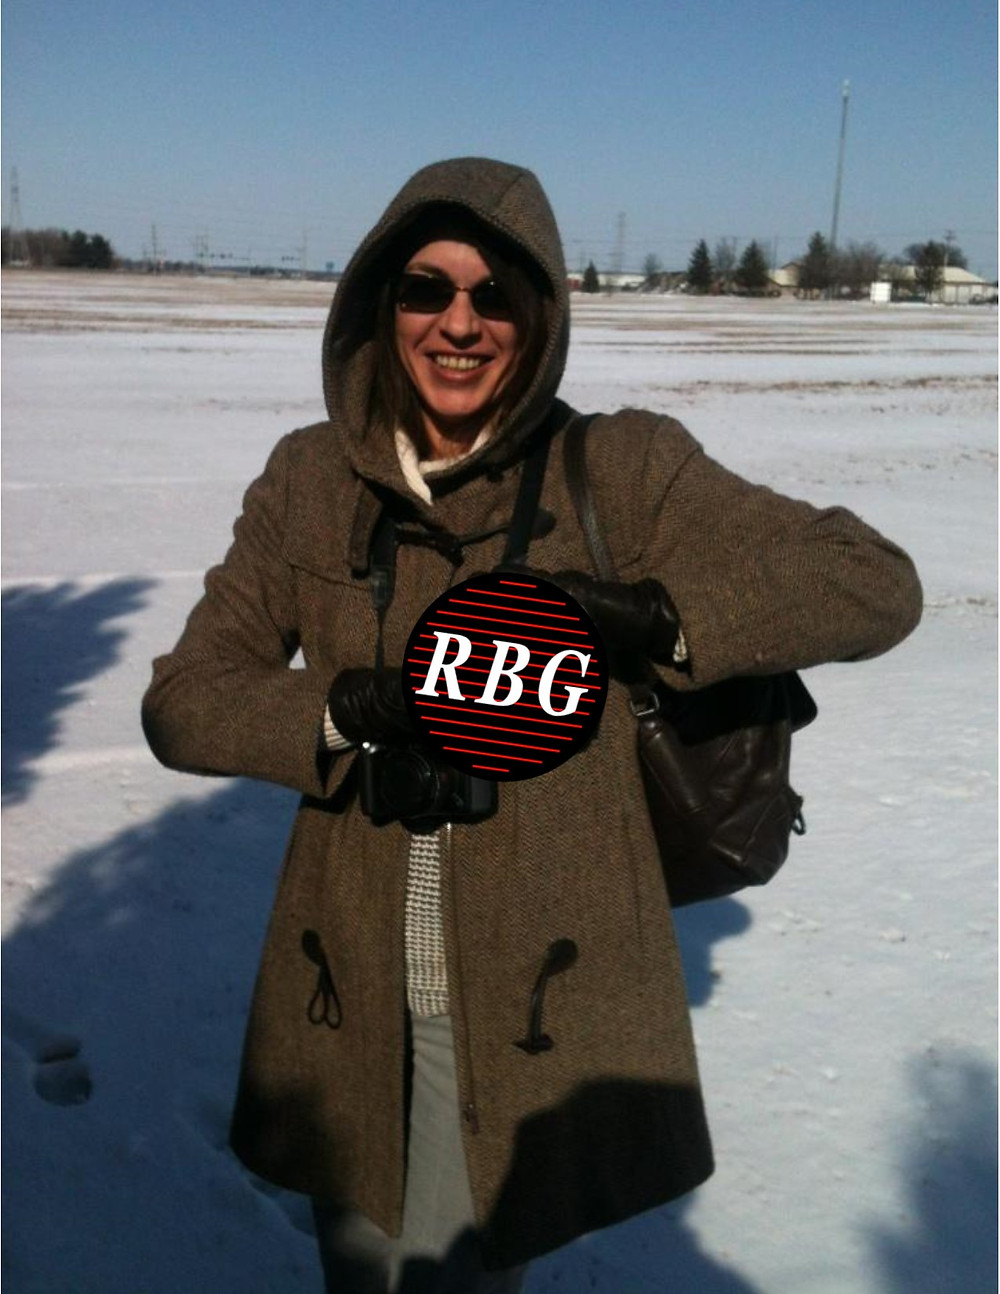 Eva holding the RBG Janitorial logo